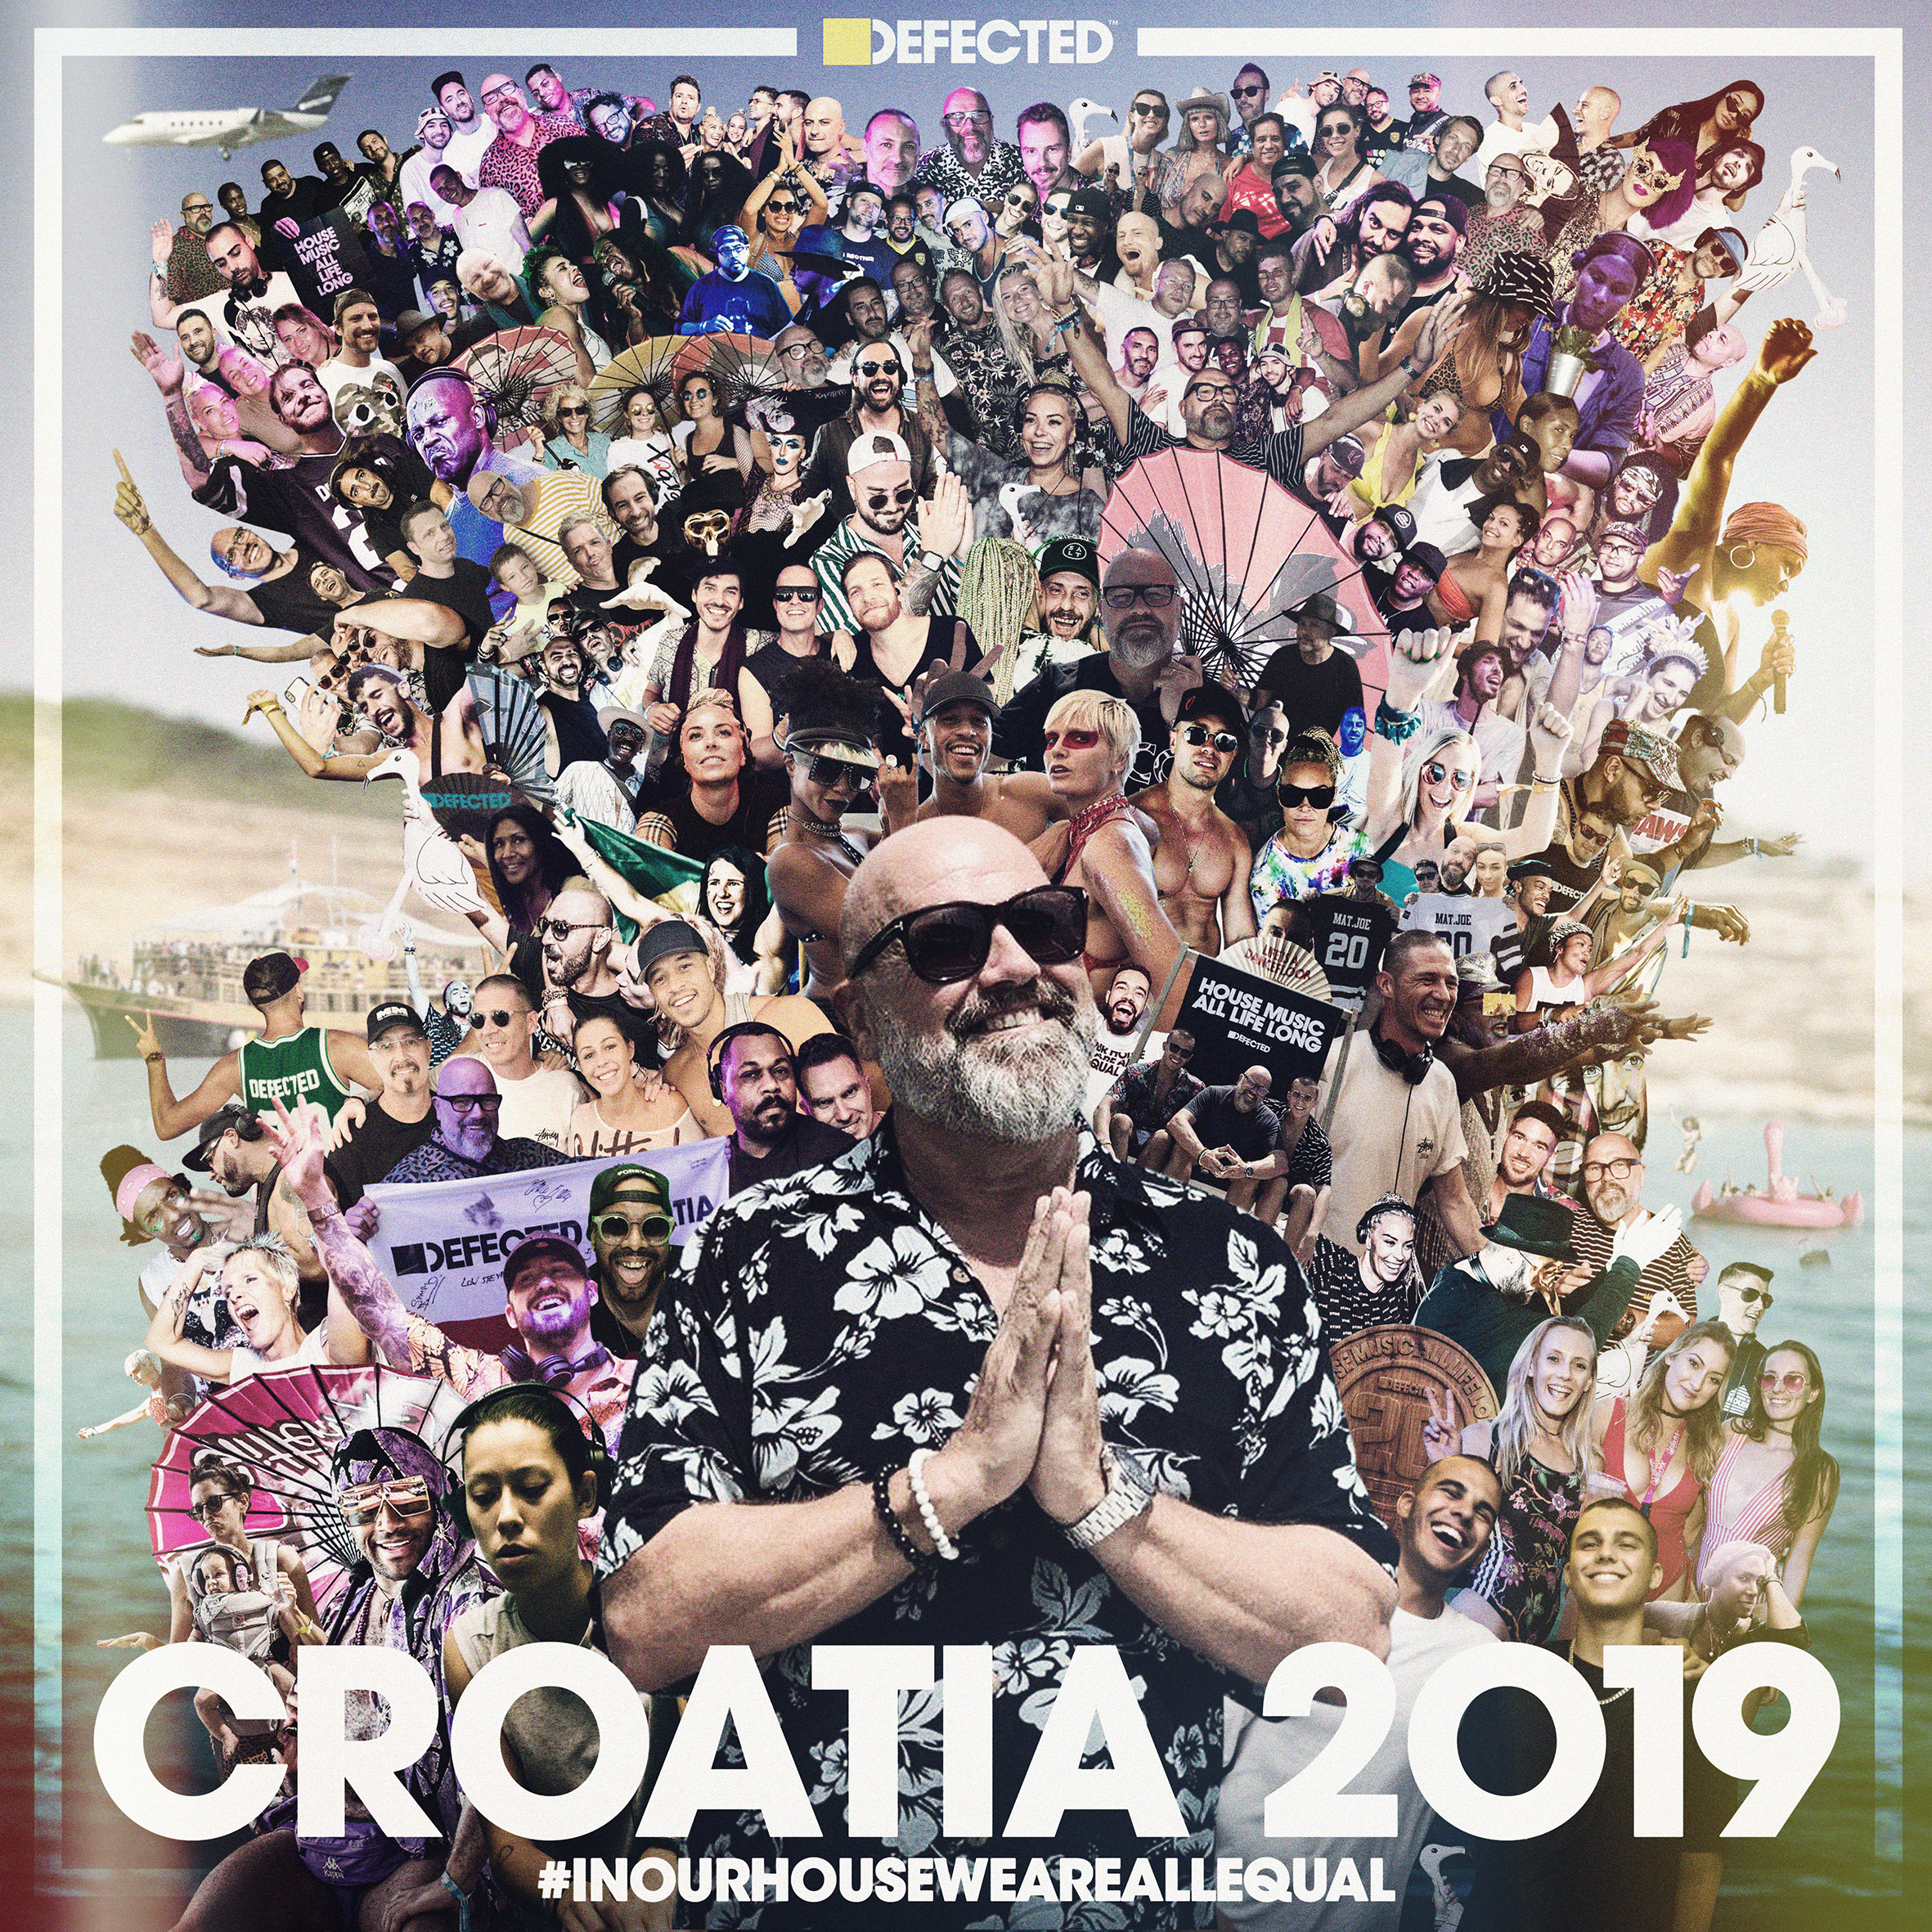 Defected Croatia 2019